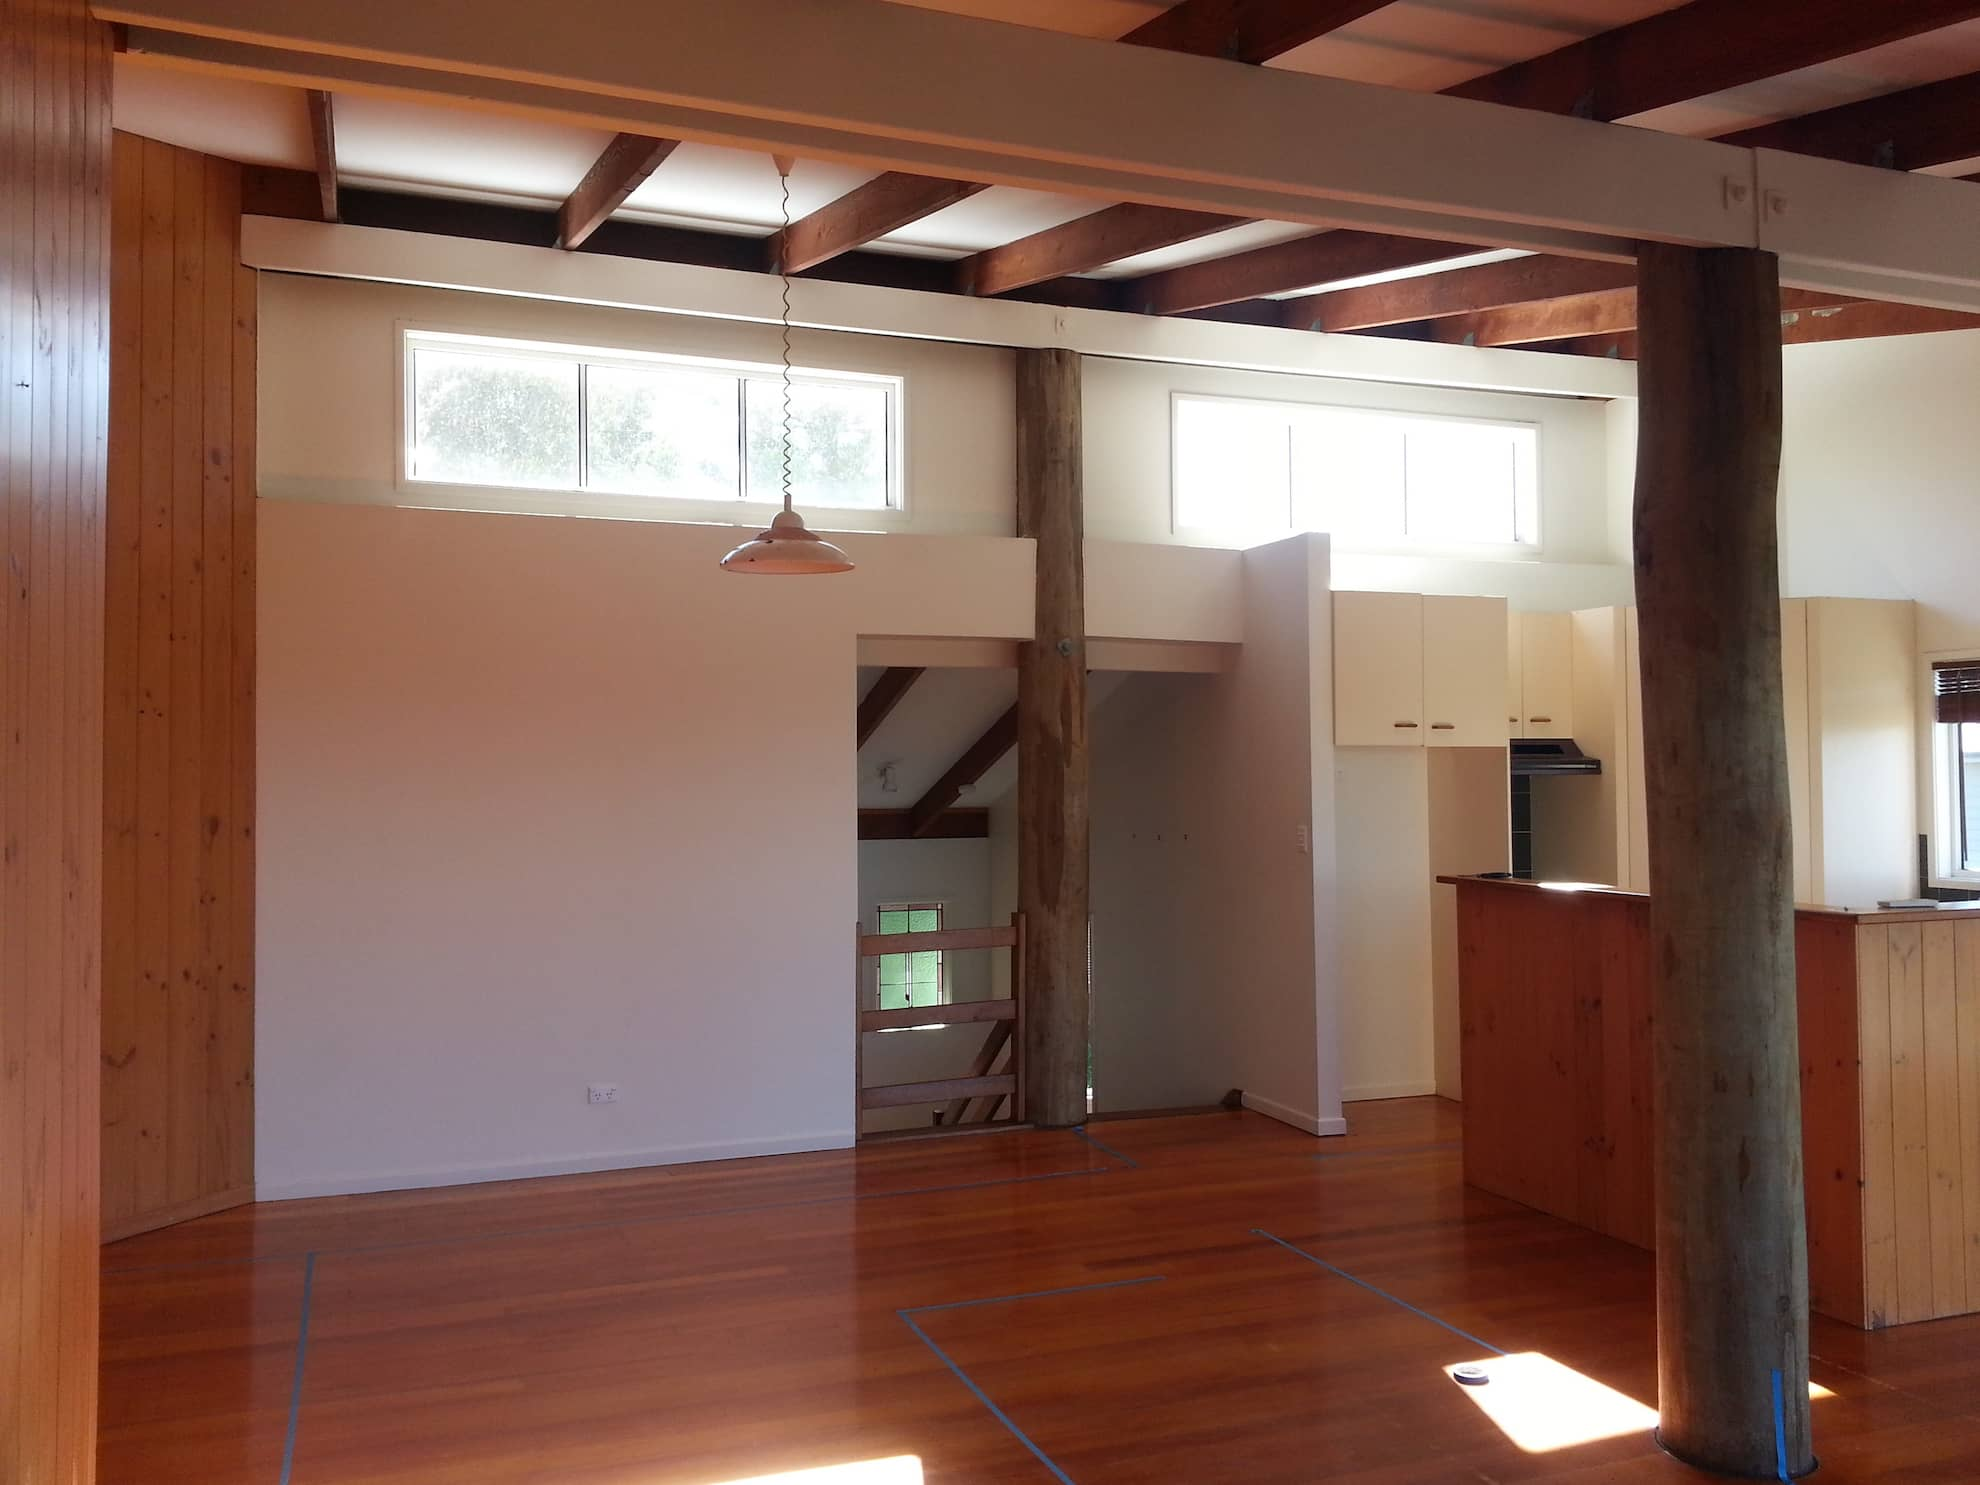 Orient Drive project by mdesign, a building design practice that operates on the Sunshine Coast.